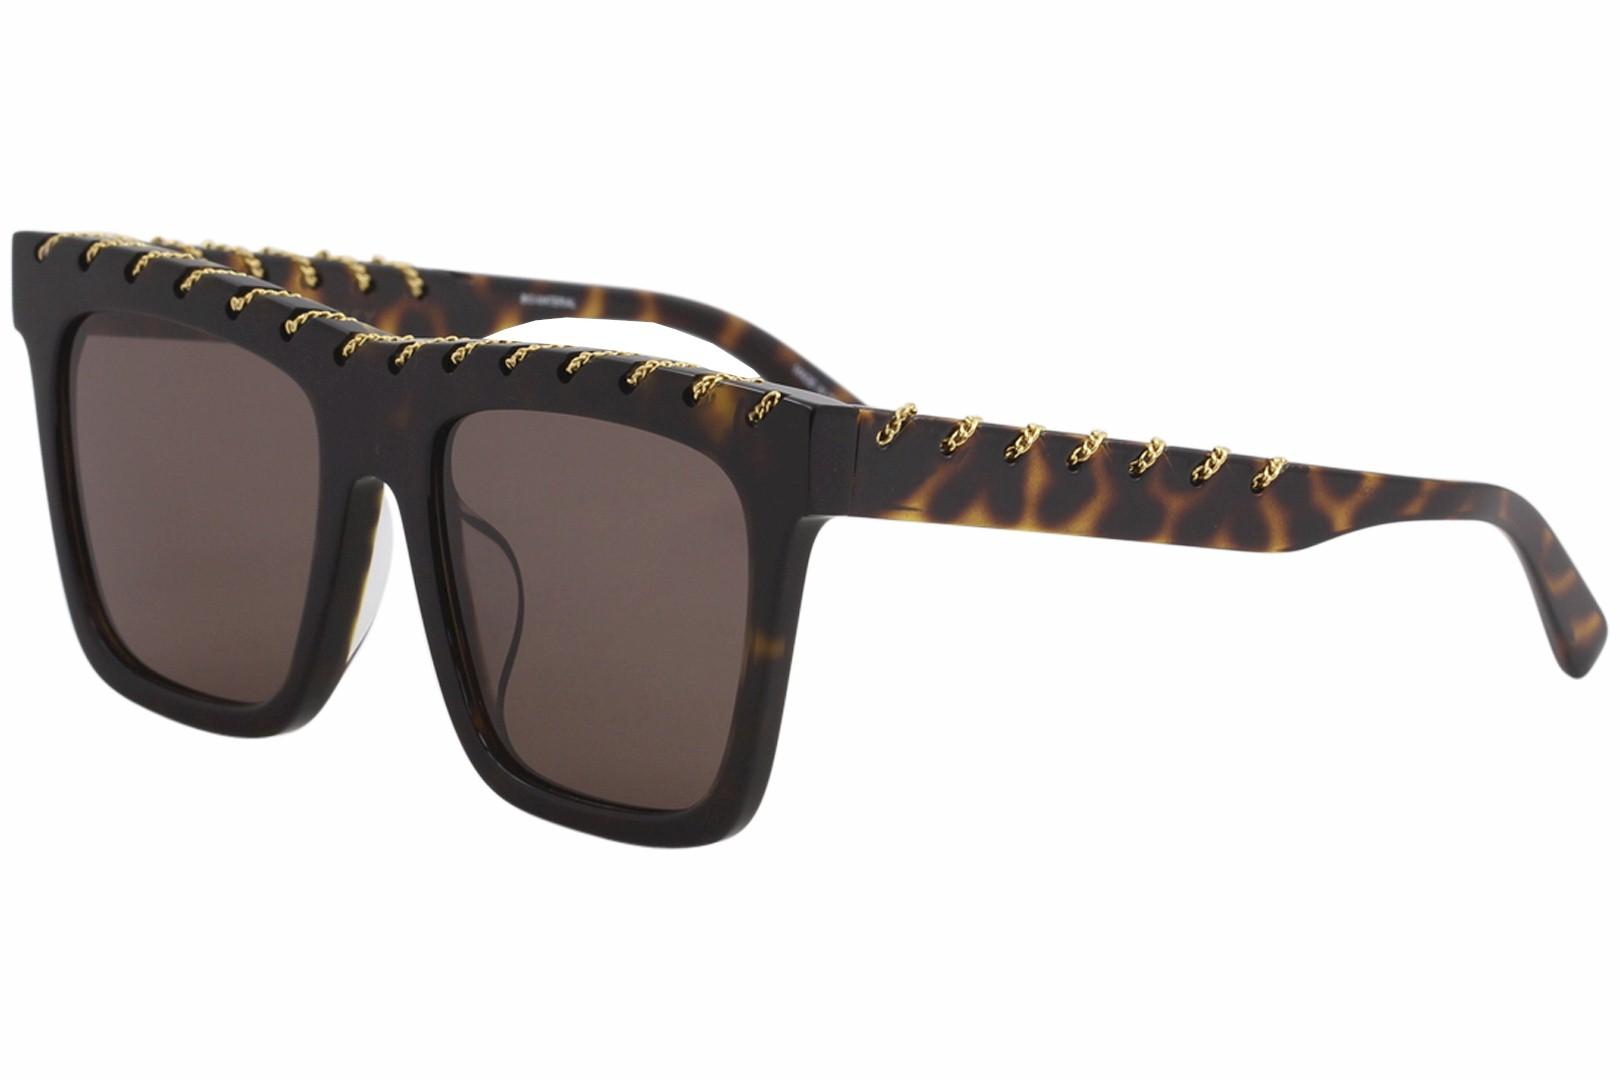 Image of Stella McCartney Falabella SC0128SA SC/0128/SA 002 Havana Square Sunglasses 54mm - Havana Gold/Brown   002 - Lens 54 Bridge 20 Temple 150mm (Asian Fit)